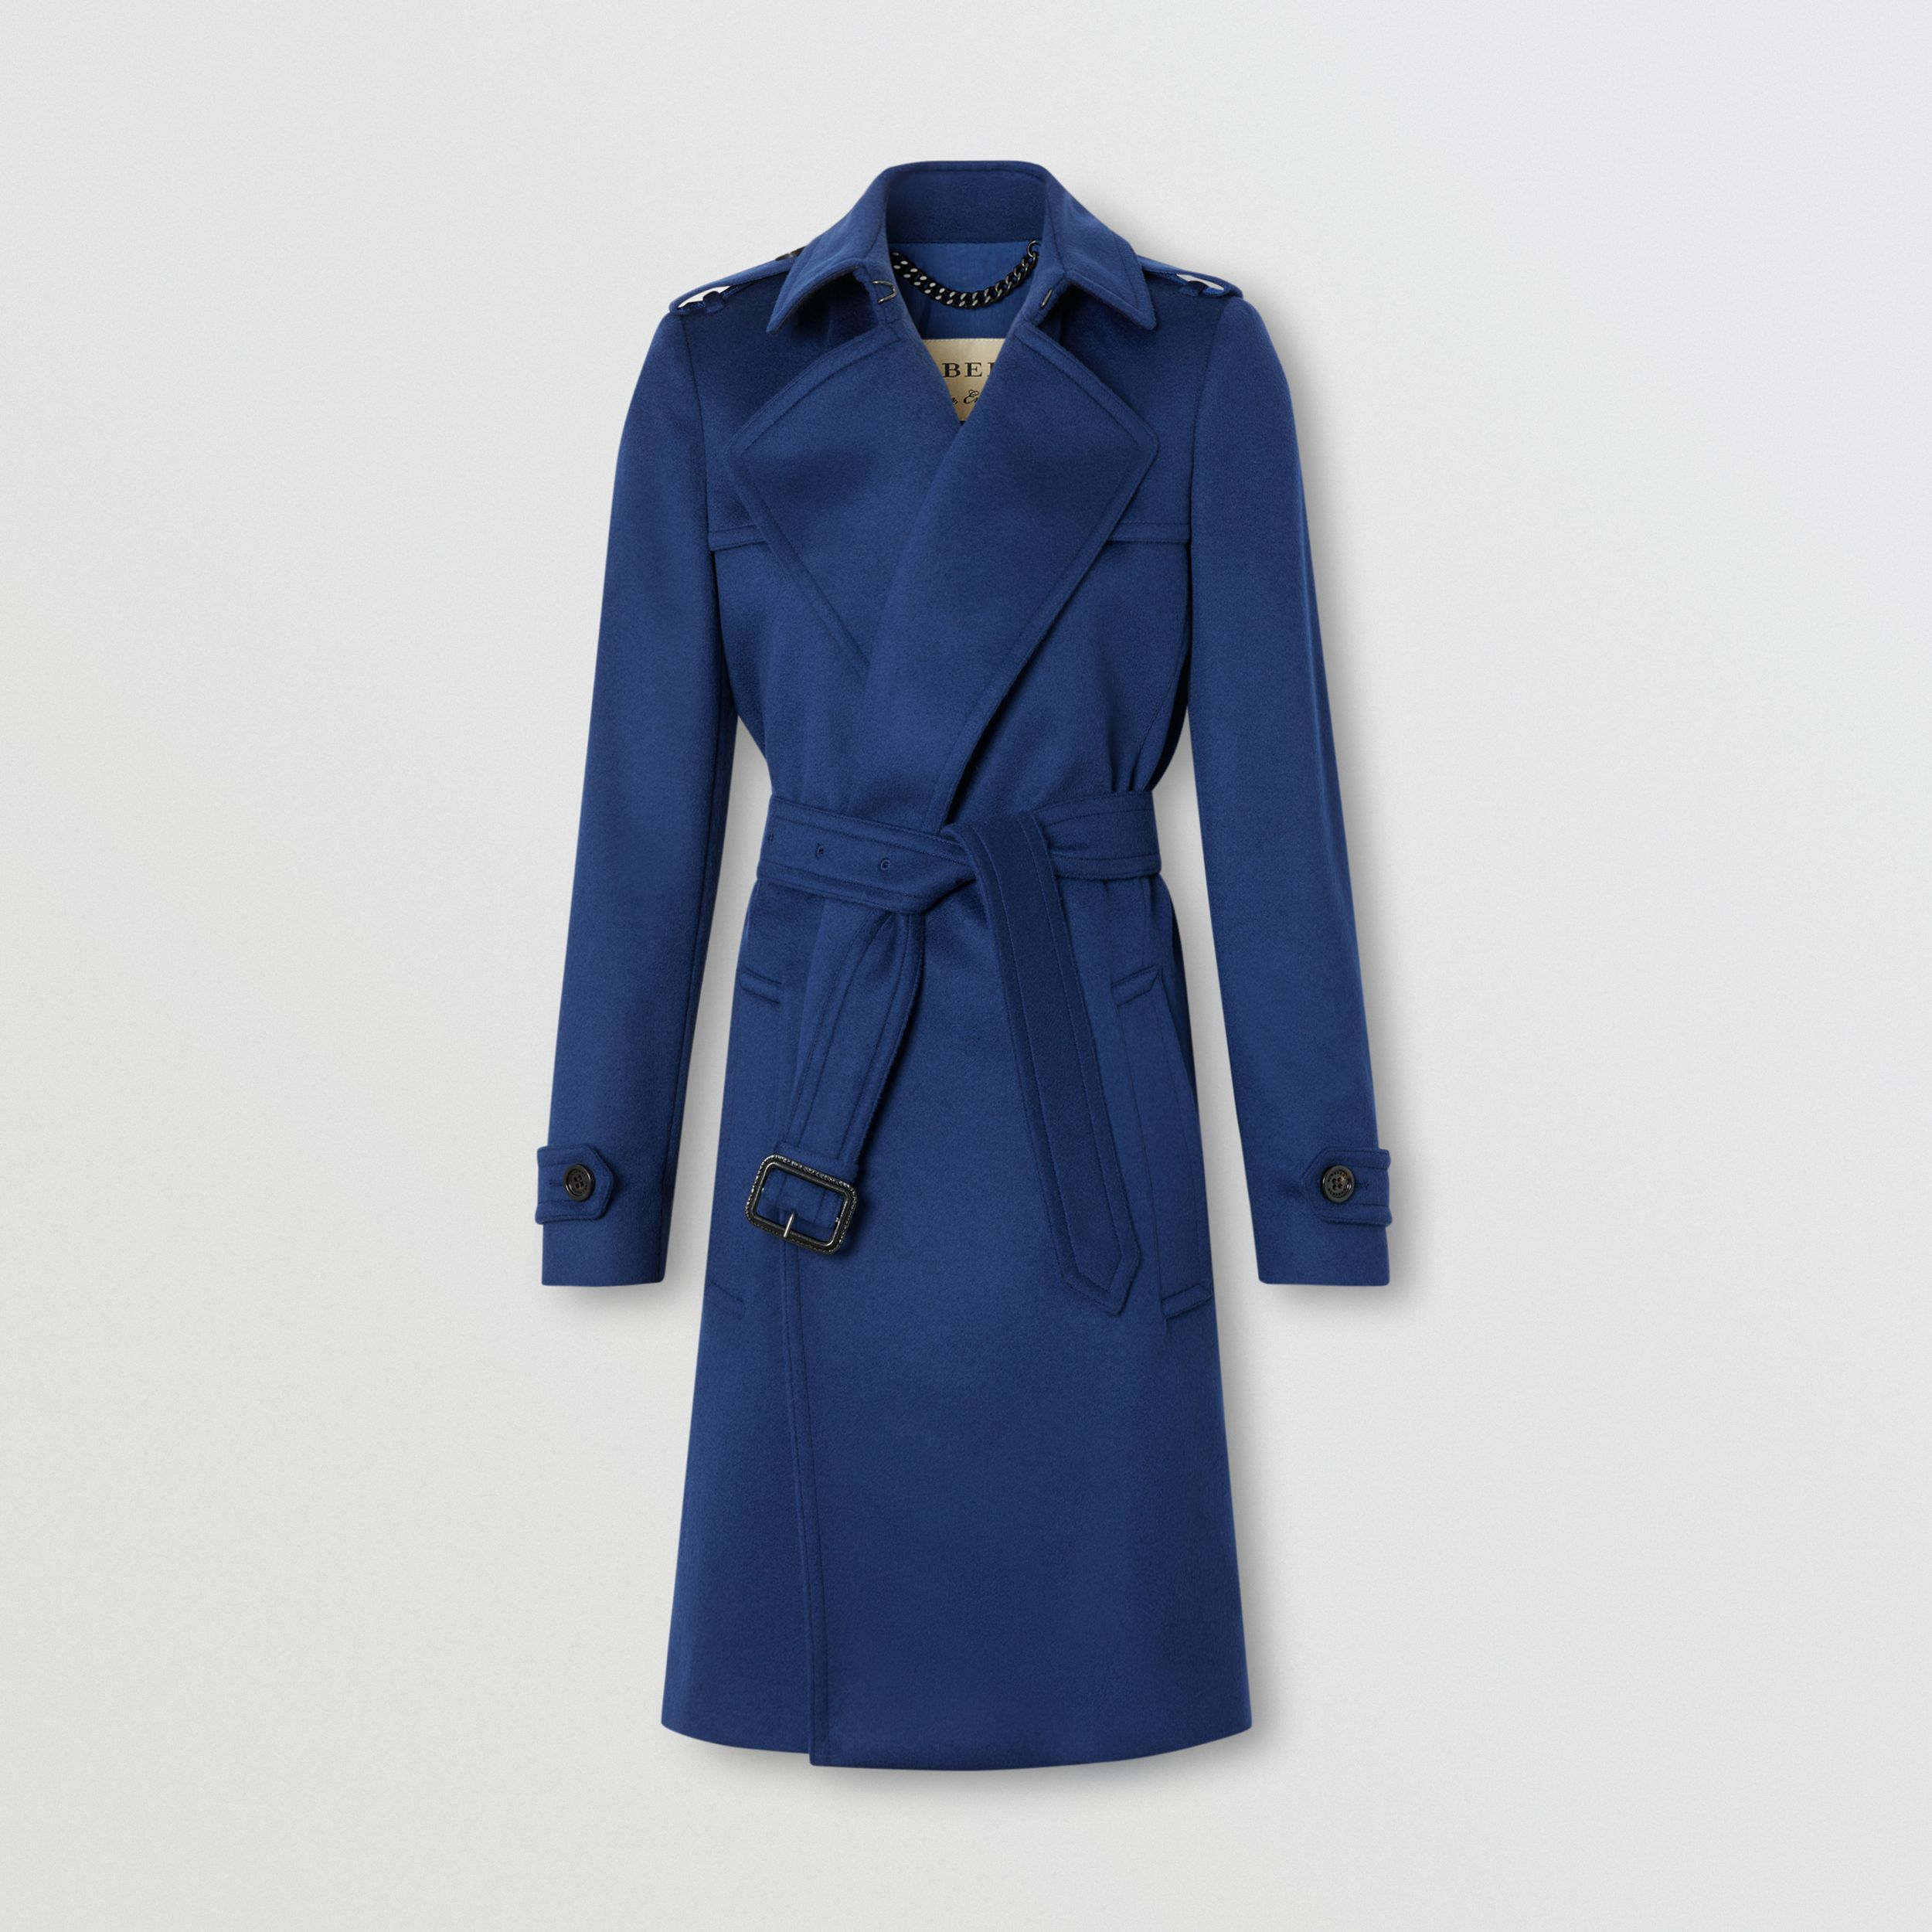 Wool Cashmere Wrap Coat in Blue - Women | Burberry - 1